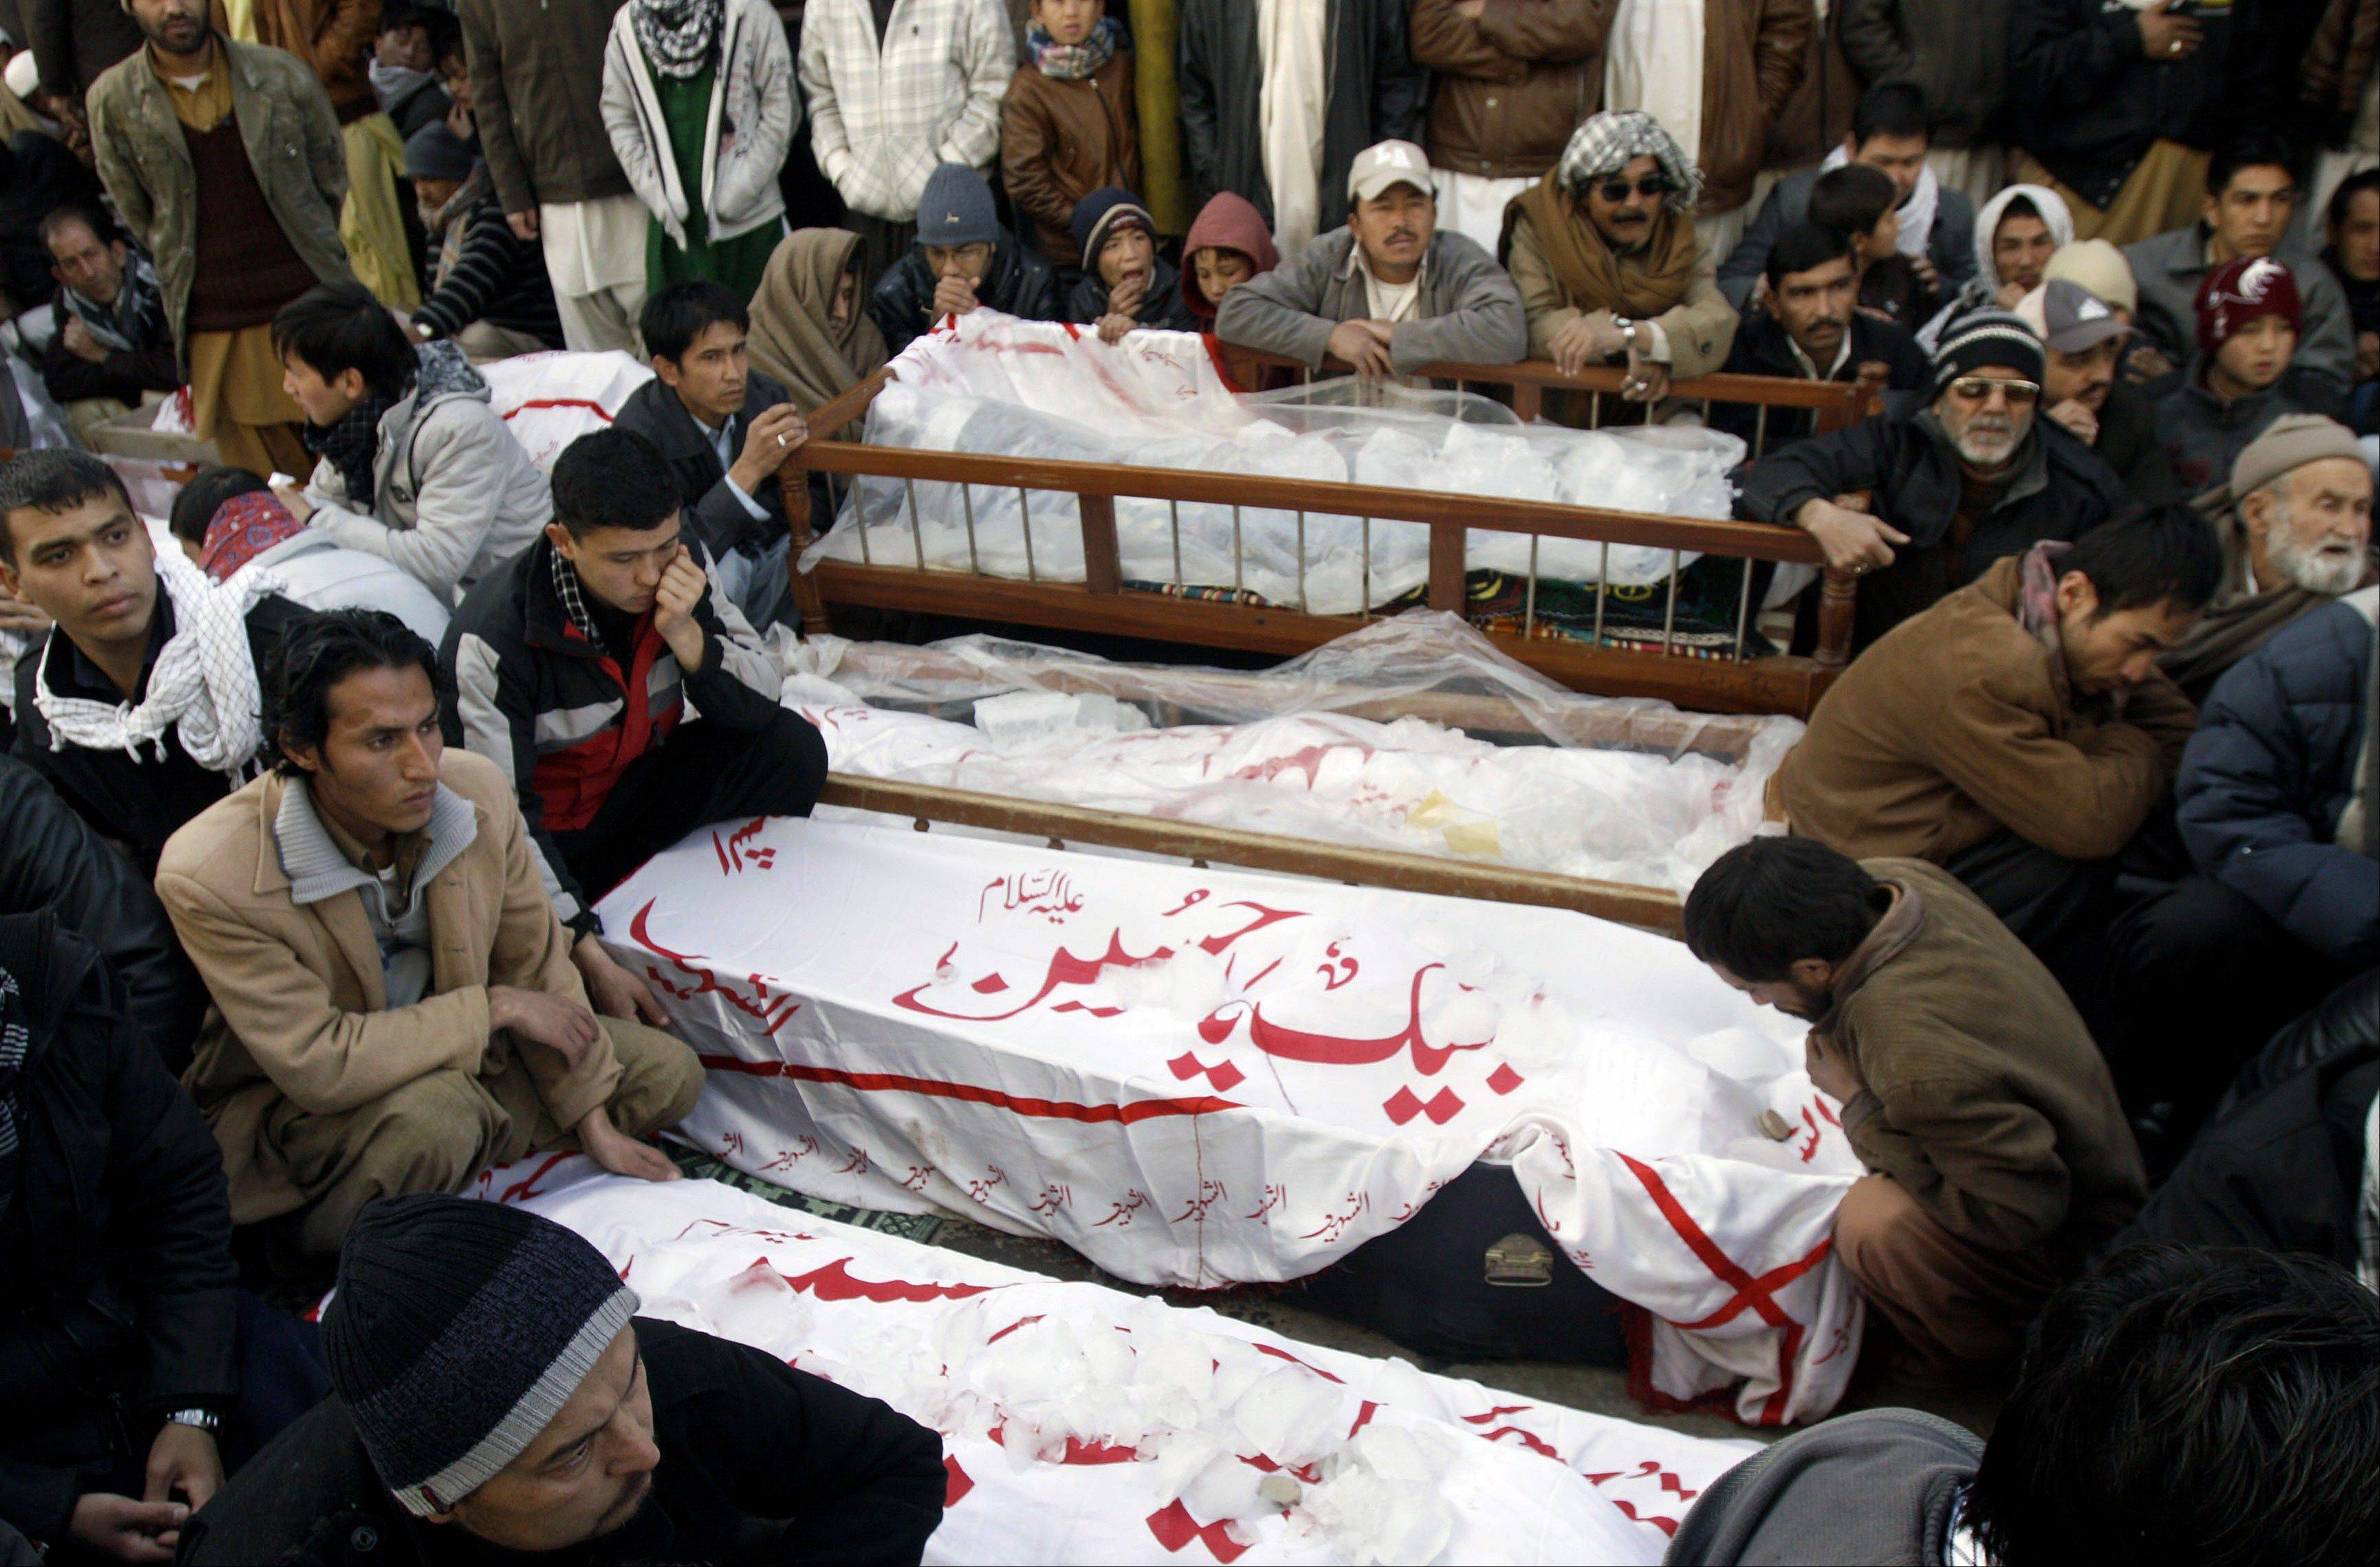 Pakistani Shiite Muslims on Jan. 12 sit next to the bodies of their relatives, who were killed in Jan. 10 bombings in Quetta.